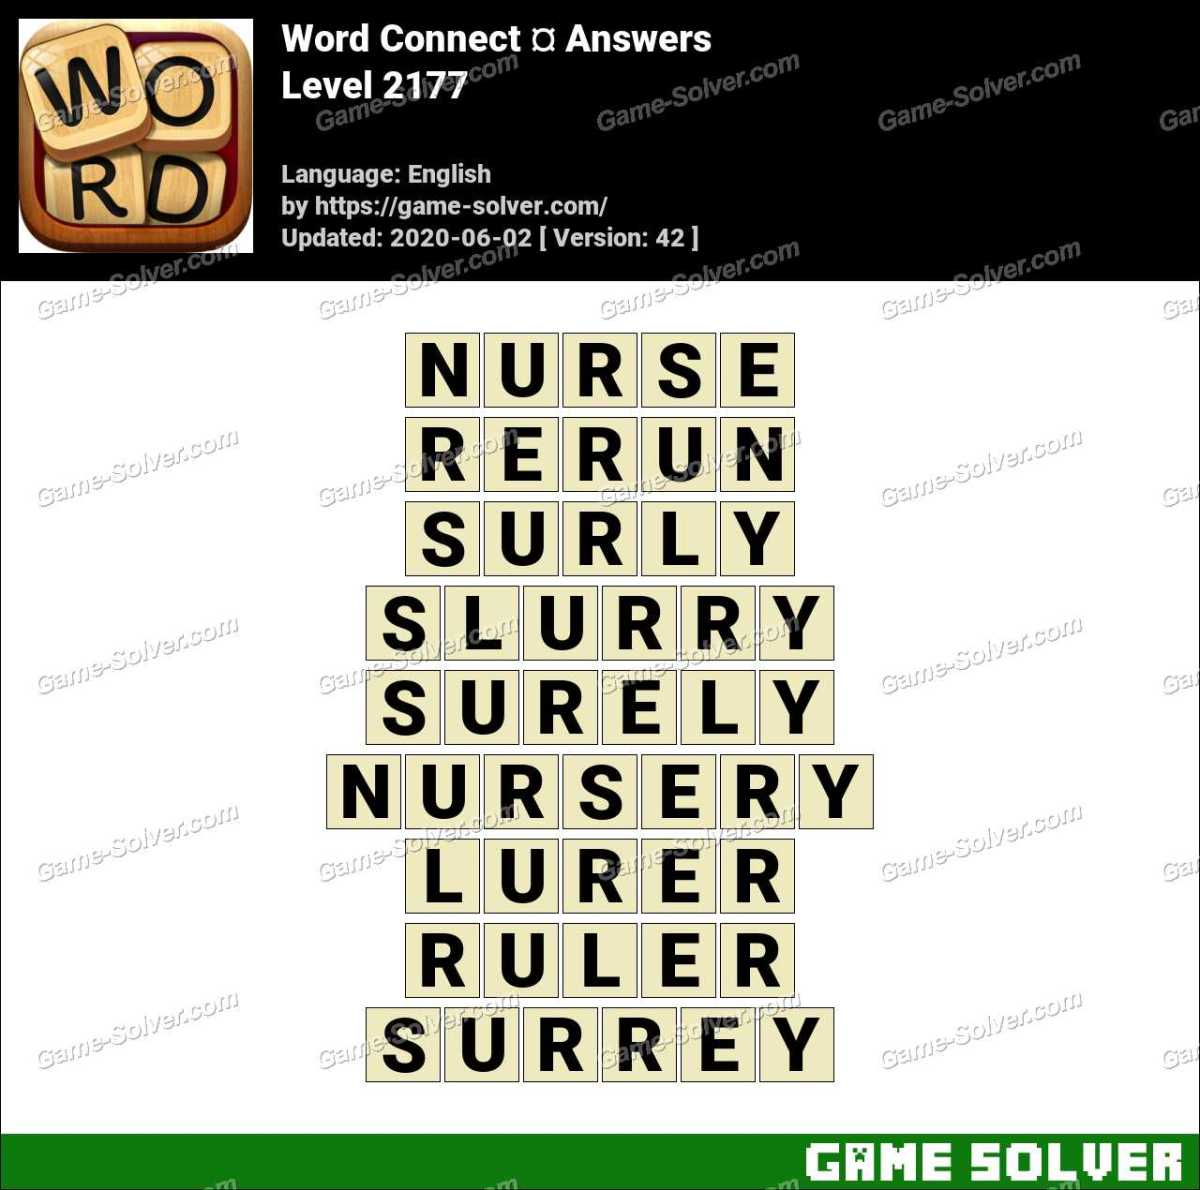 Word Connect Level 2177 Answers